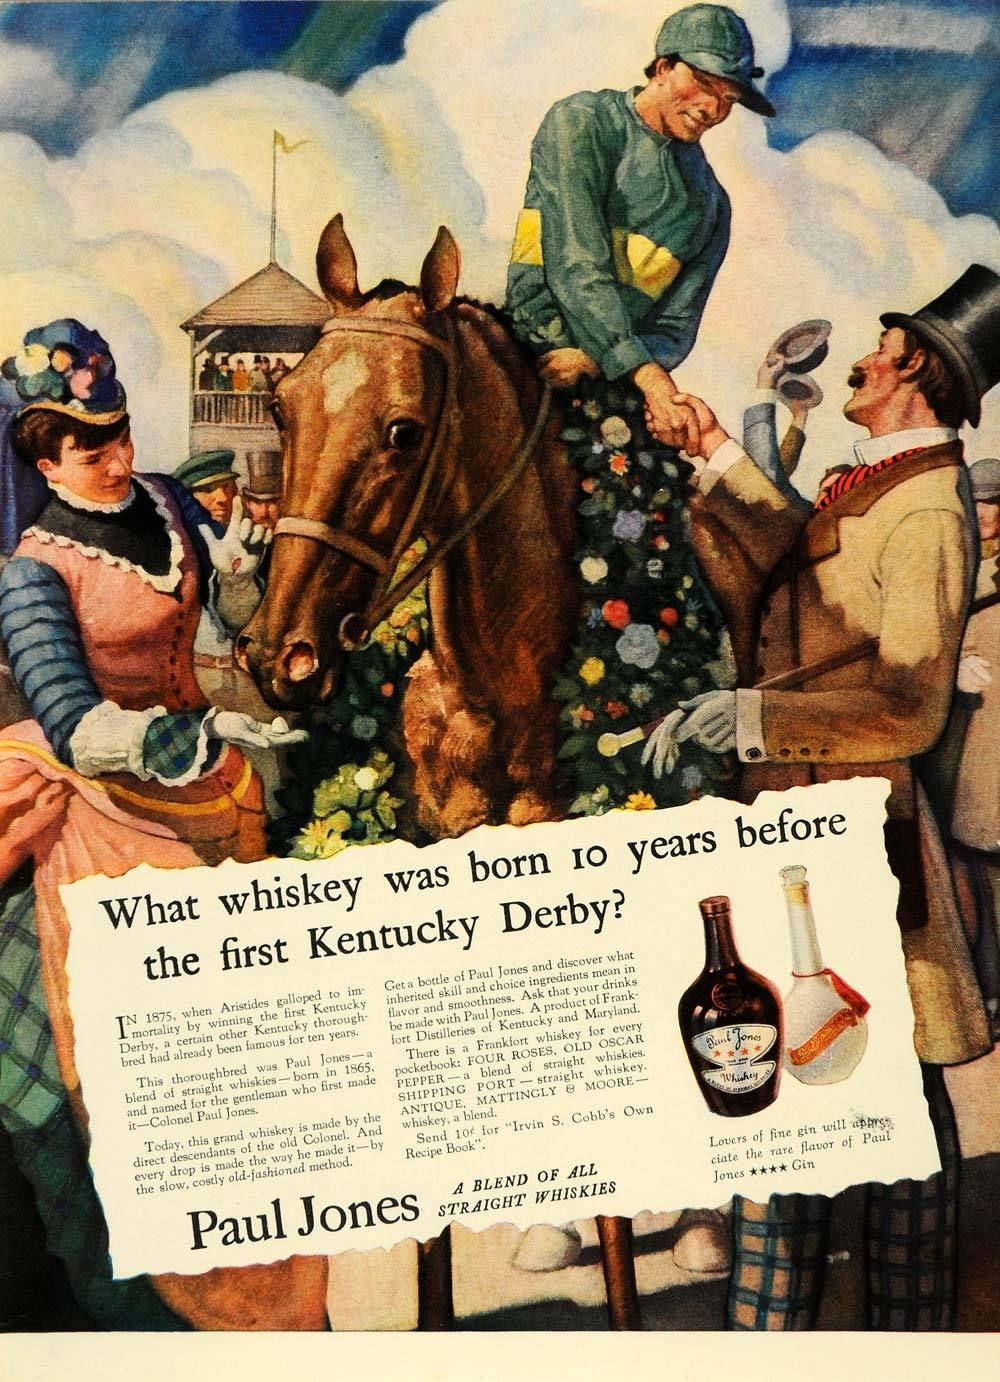 The Kentucky Derby, the Preakness & the Belmont Stakes